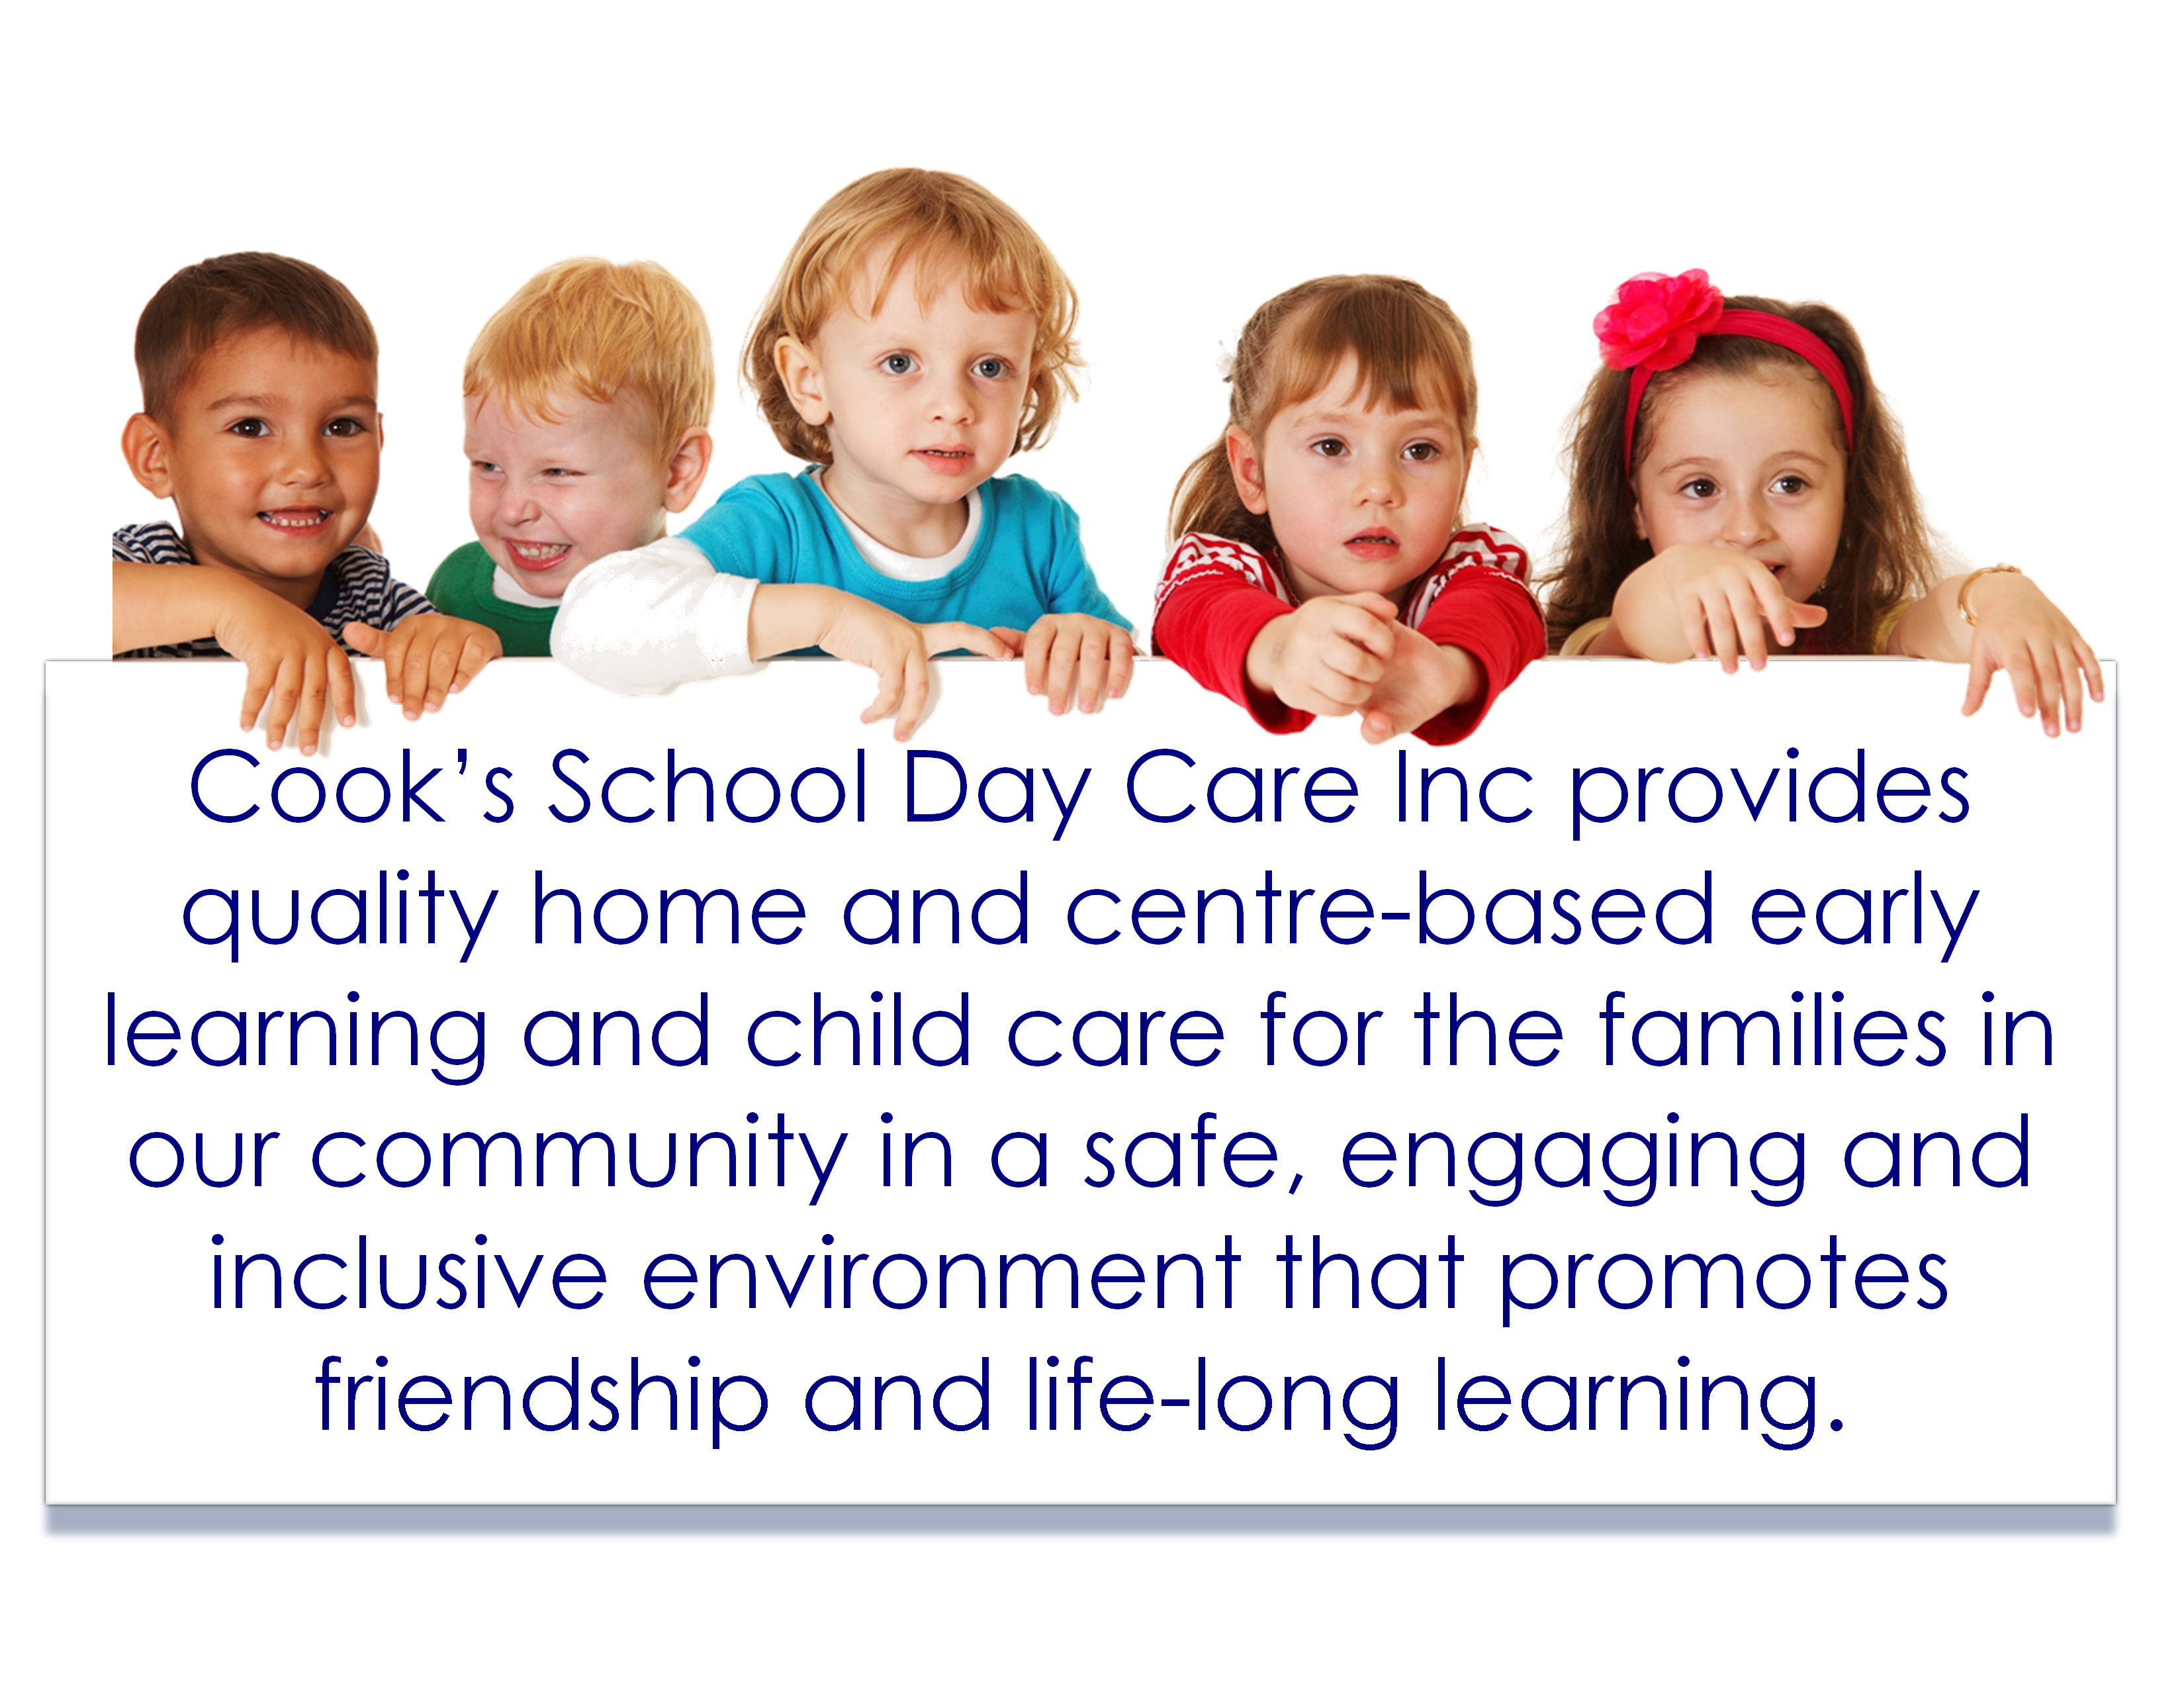 Victoria Park Child Care Centre (Cook's School Day Care Inc.) image 0